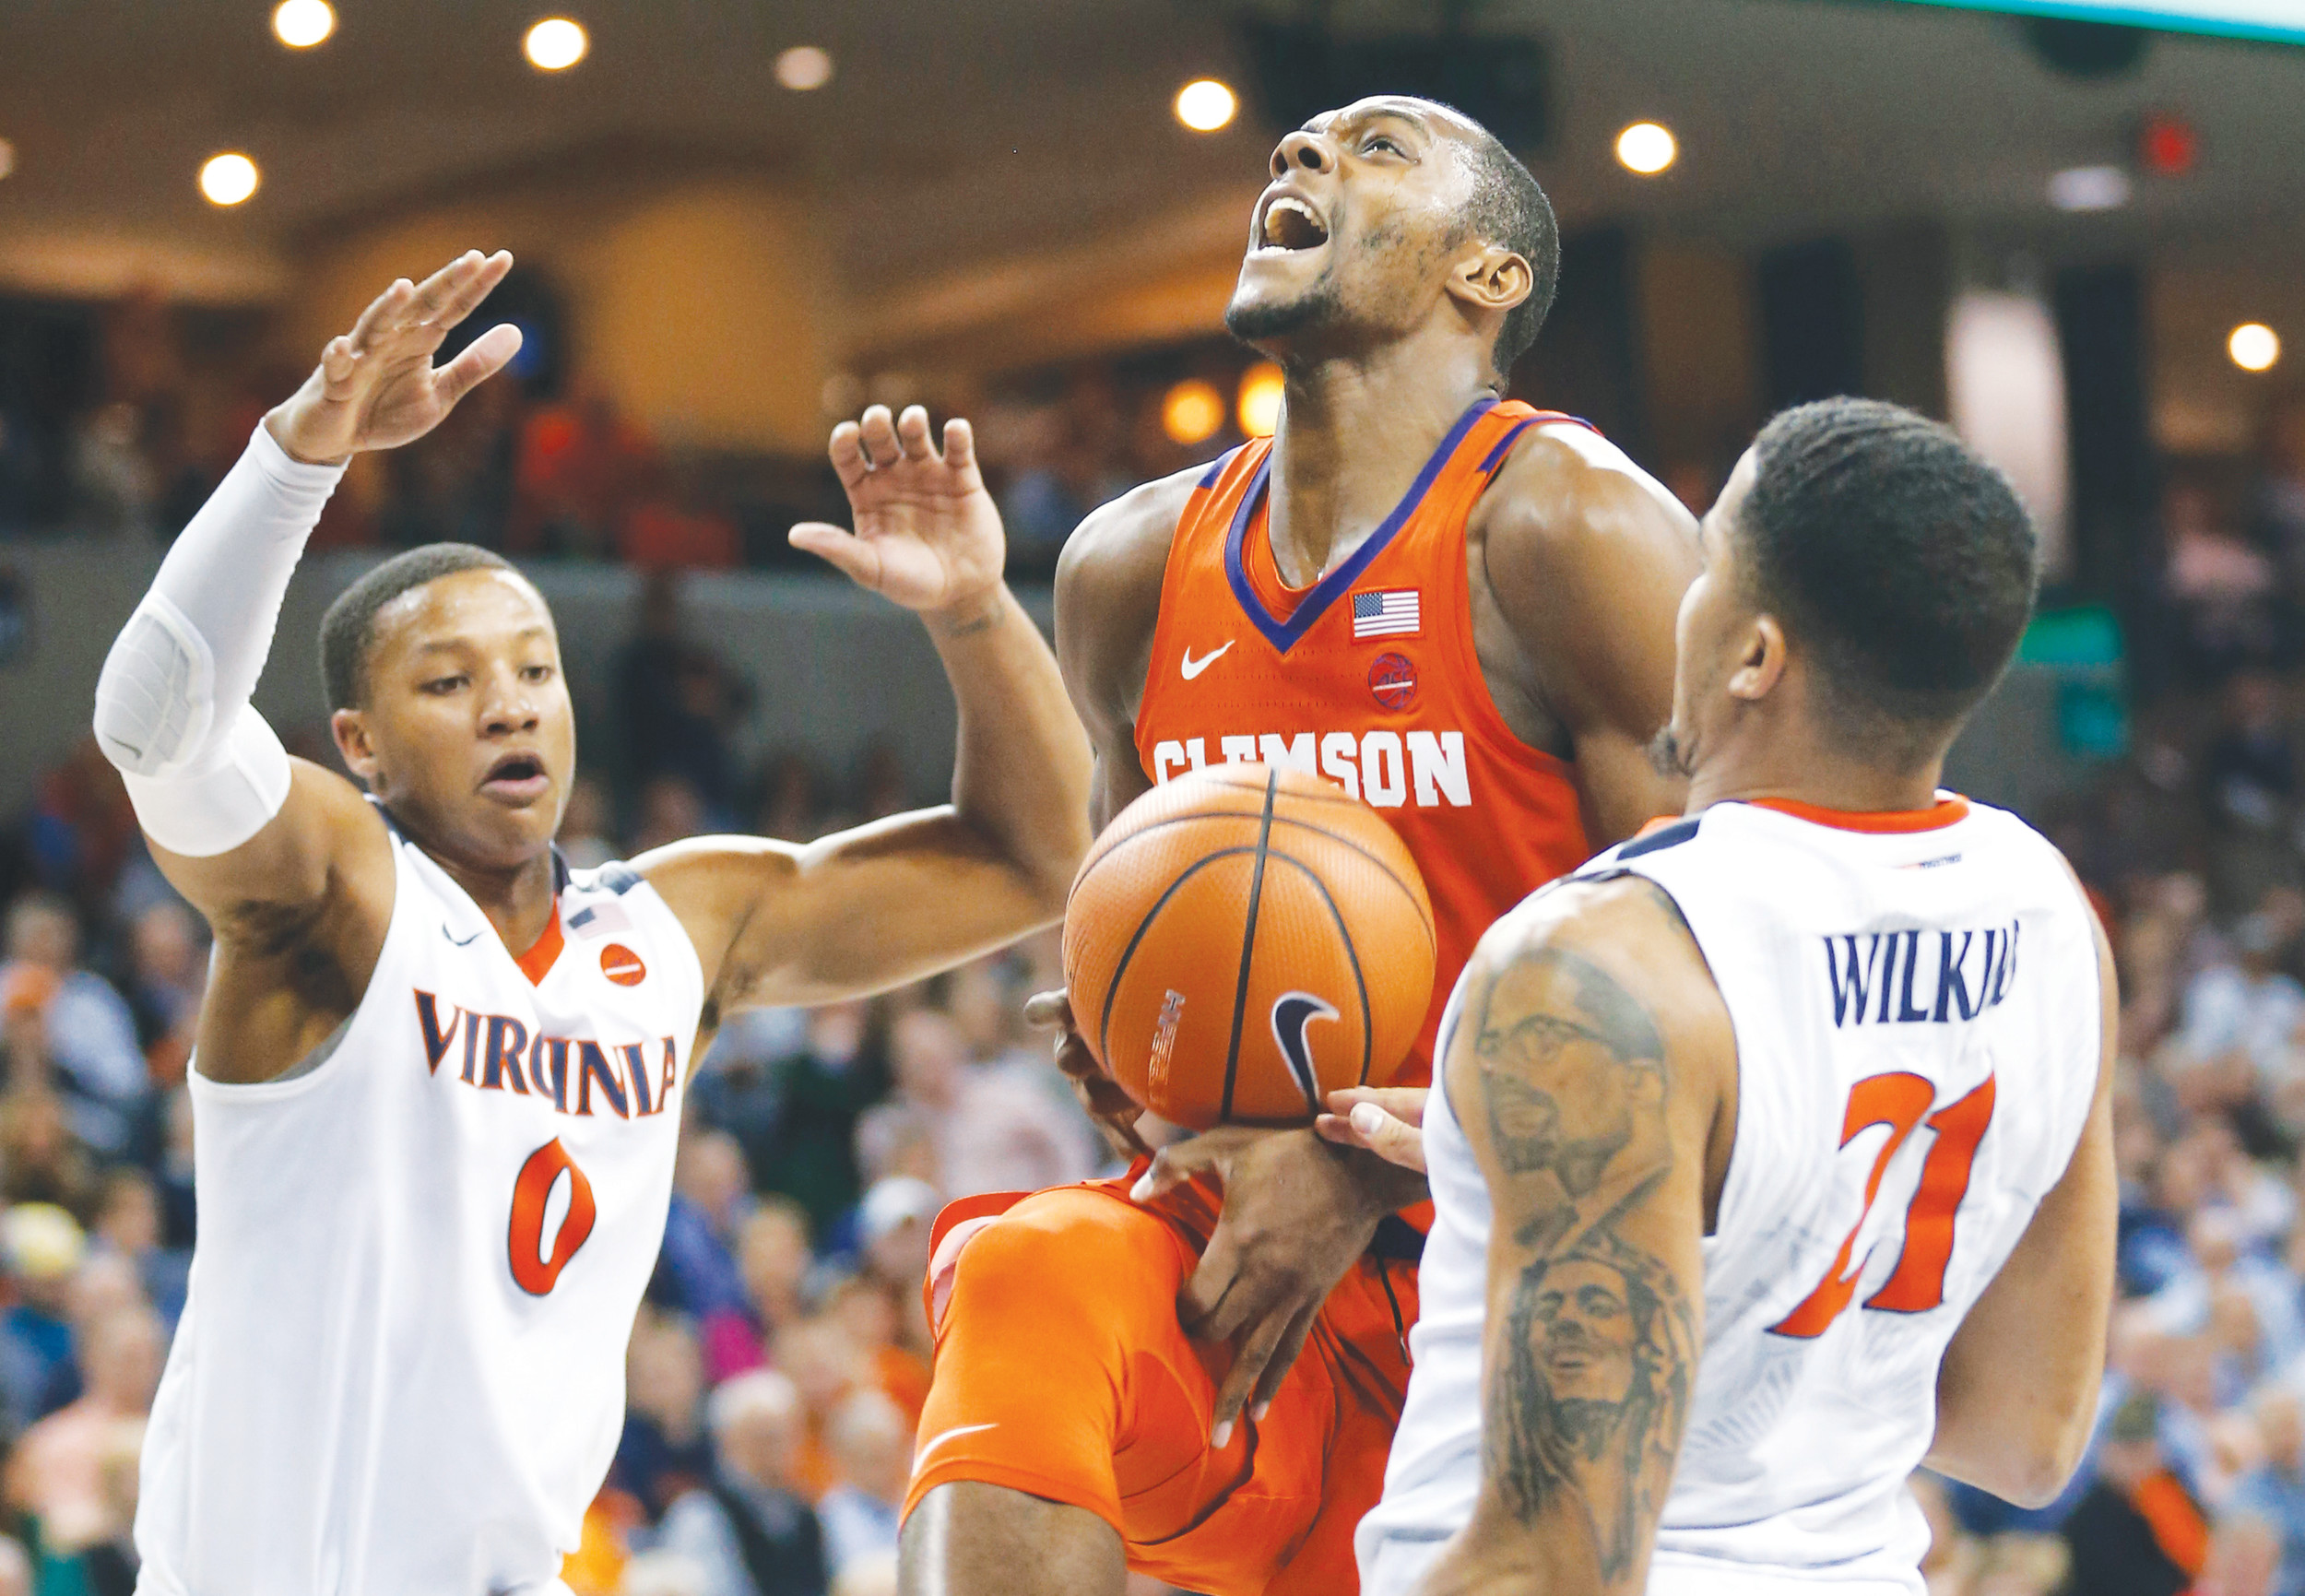 Clemson forward Aamir Simms (25) loses the ball as Virginia guard Devon Hall (0) and forward Isaiah Wilkins (21) defend during the first half of the Cavaliers' 61-36 victory over the Tivers on Tuesday in Charlottesville, Virginia.